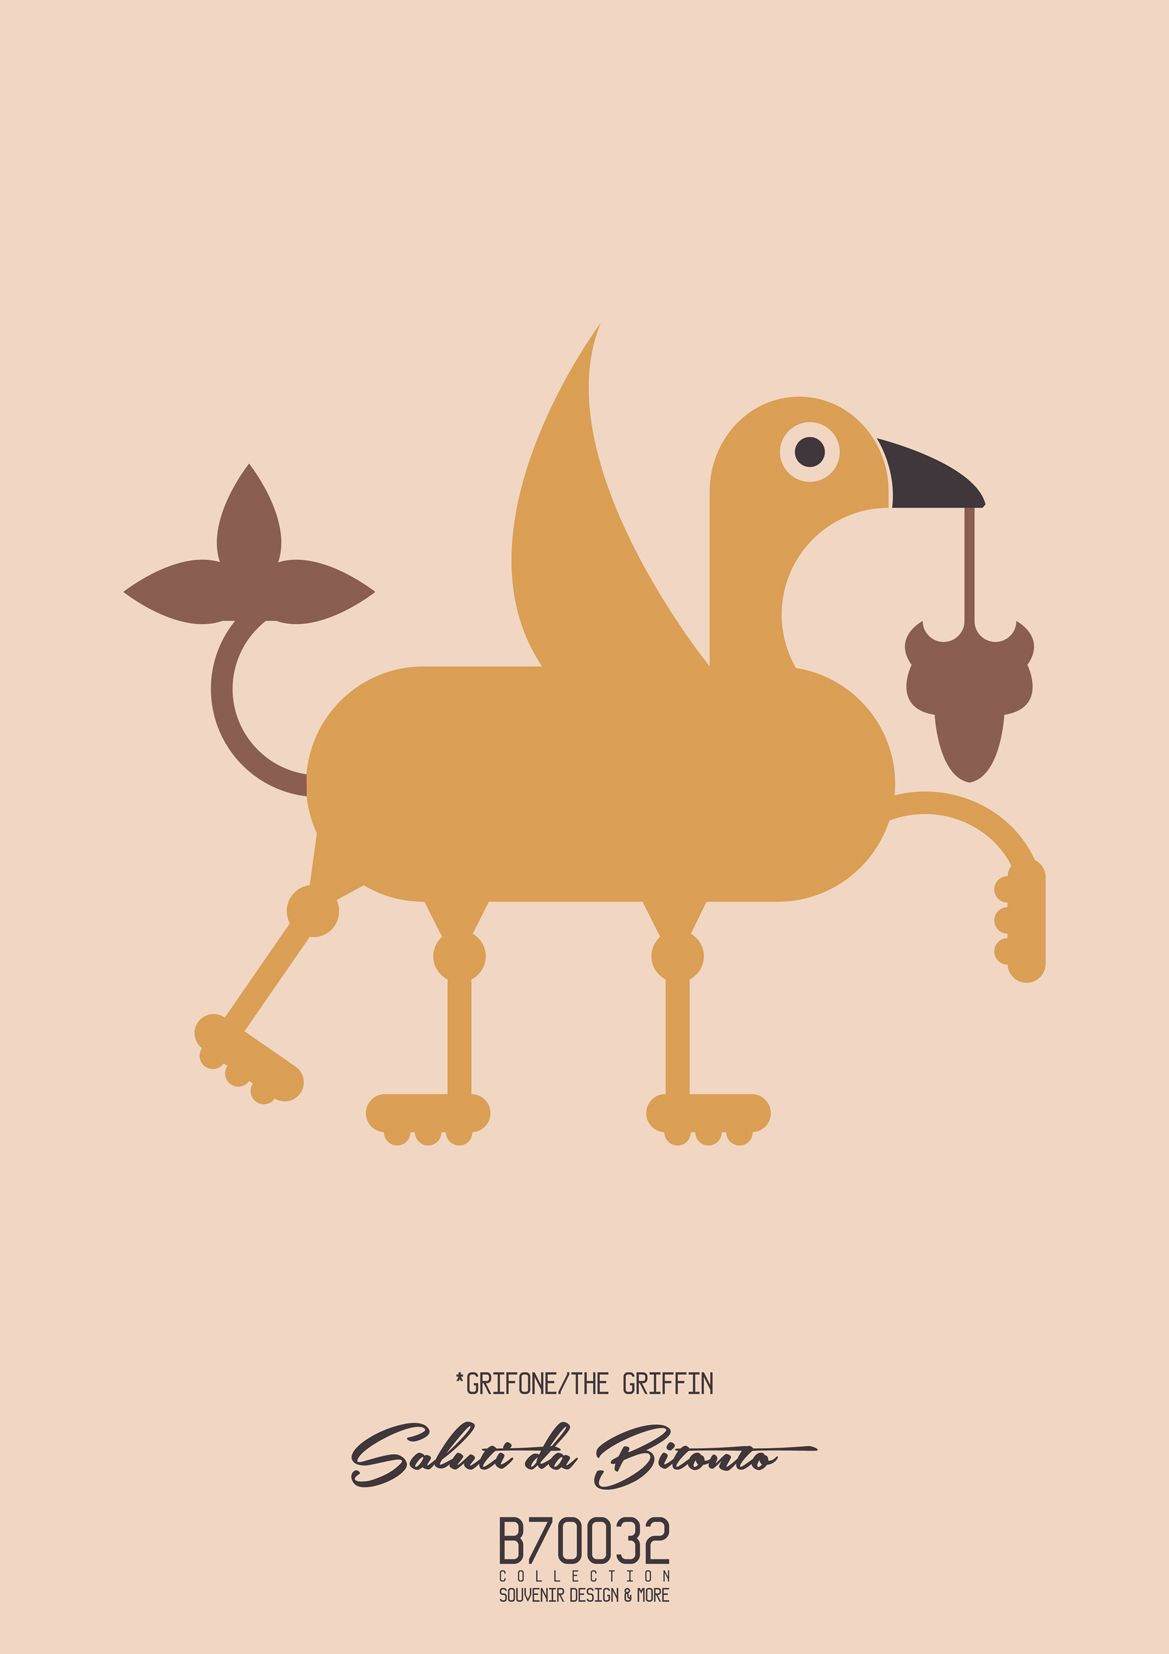 *GRIFONE/THE GRIFFIN www.b70032.it